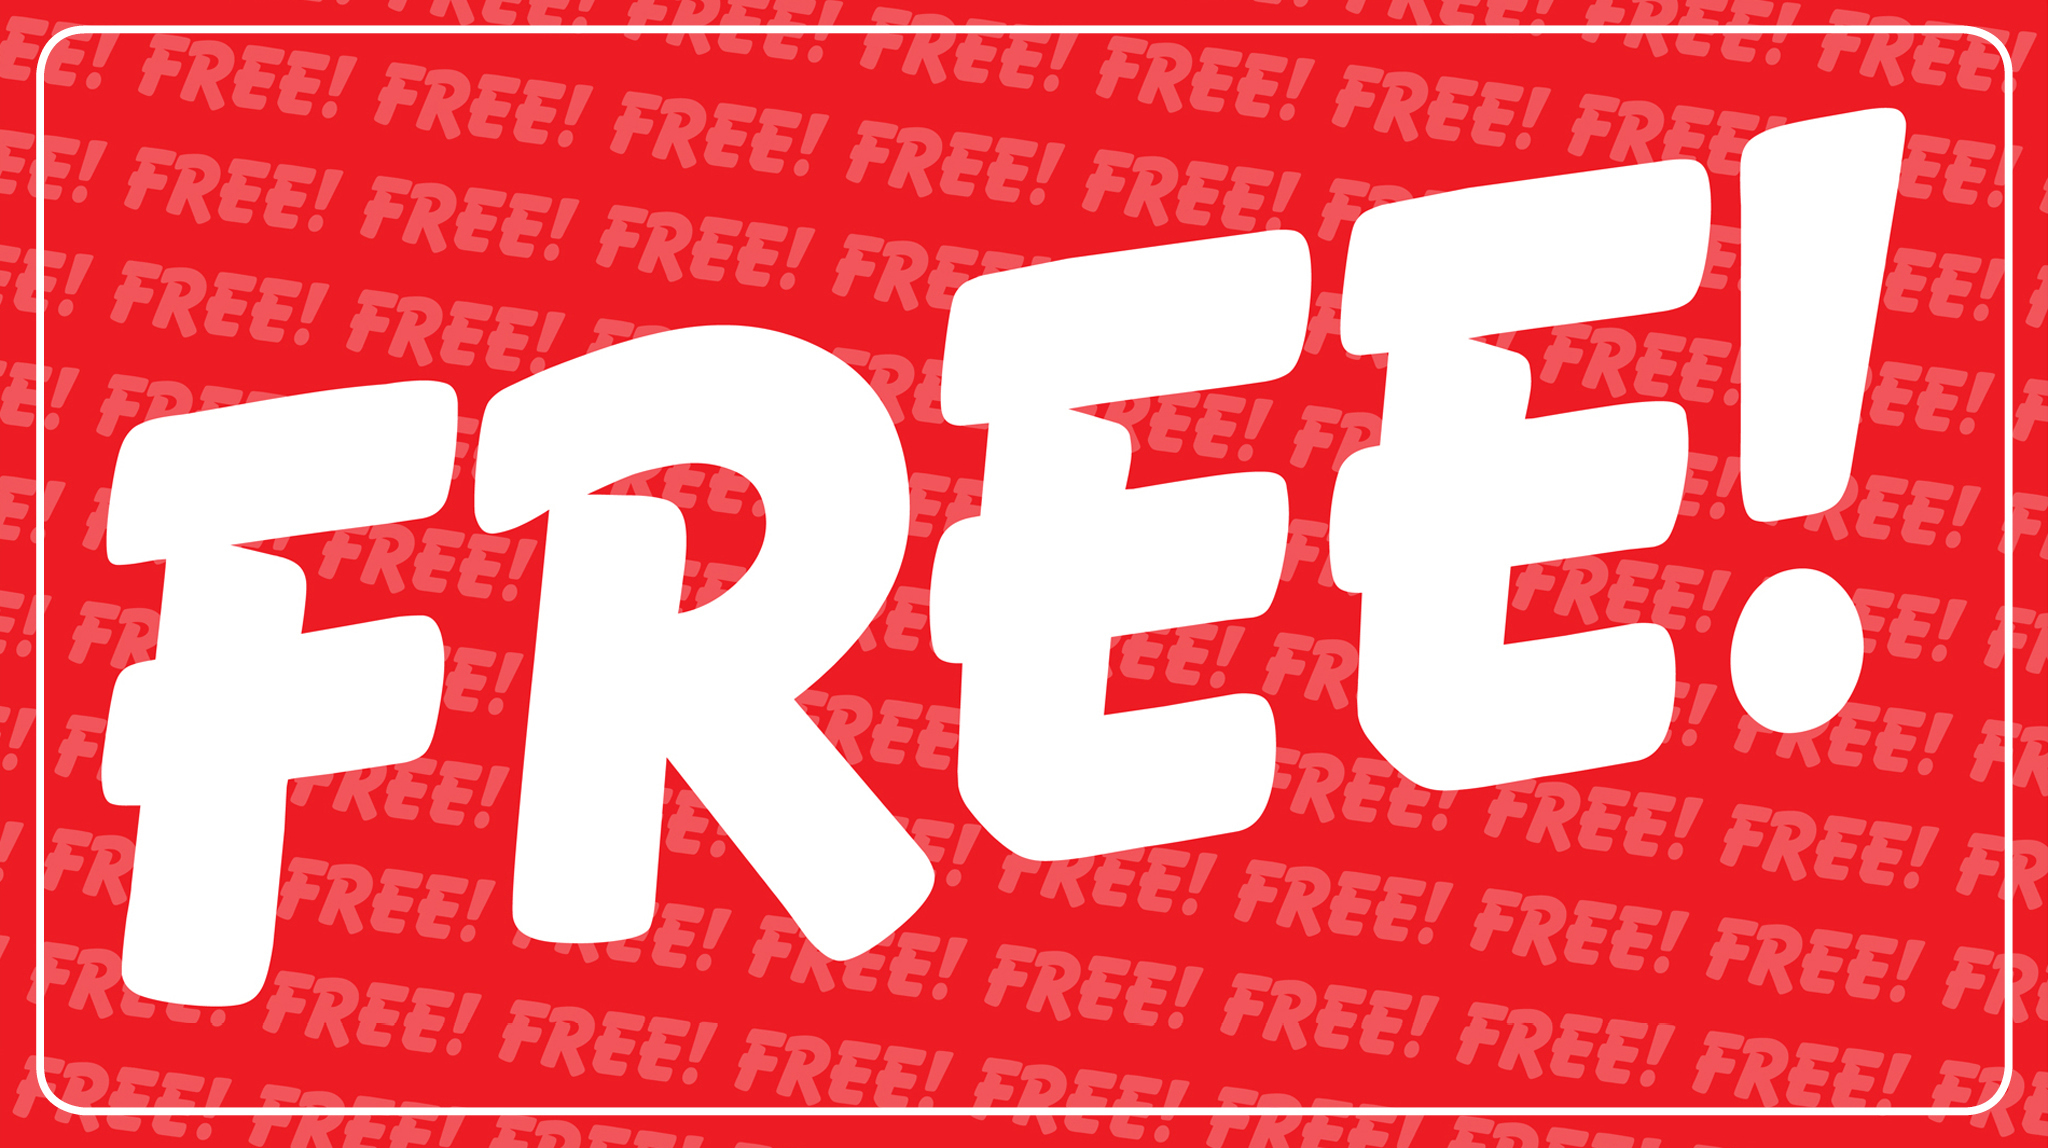 BLOG Free Things On The Internet We All Should Be Taking - Free things internet take advantage